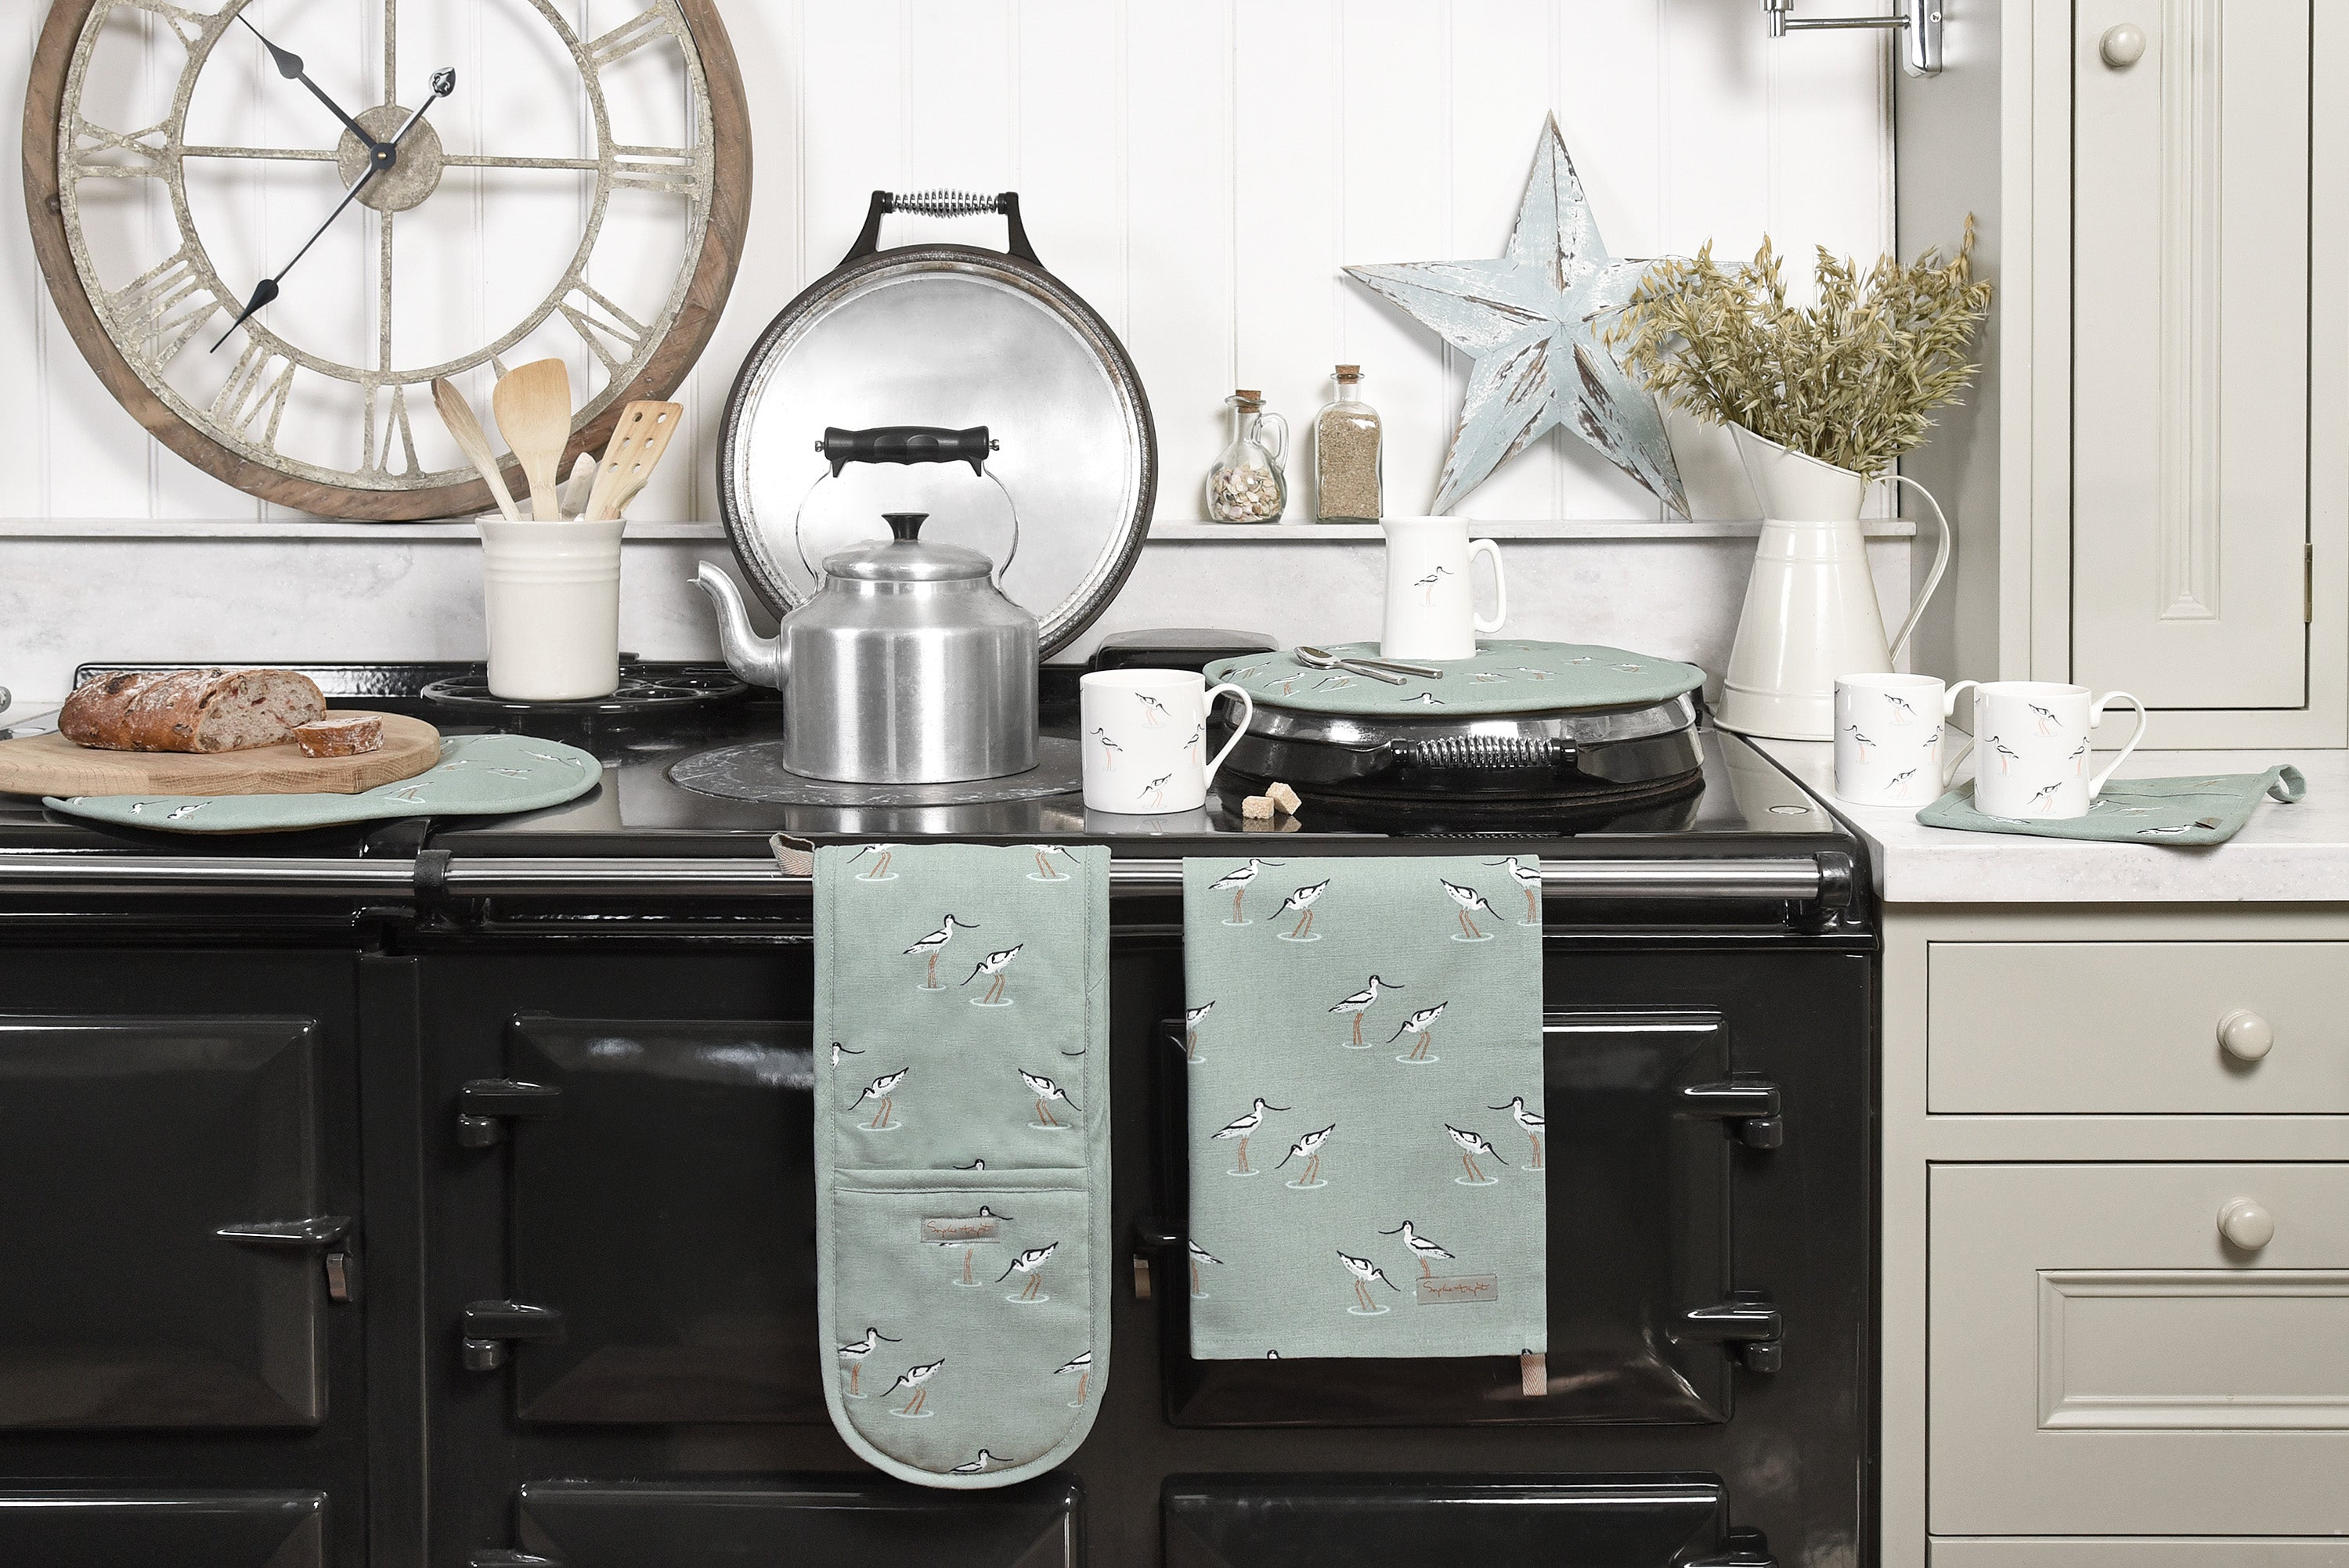 An AGA dressed in Sophie Allport's sea blue green coastal birds collection featuring elegant avocets, including tea towel, oven globes, hob cover, mugs and jugs.